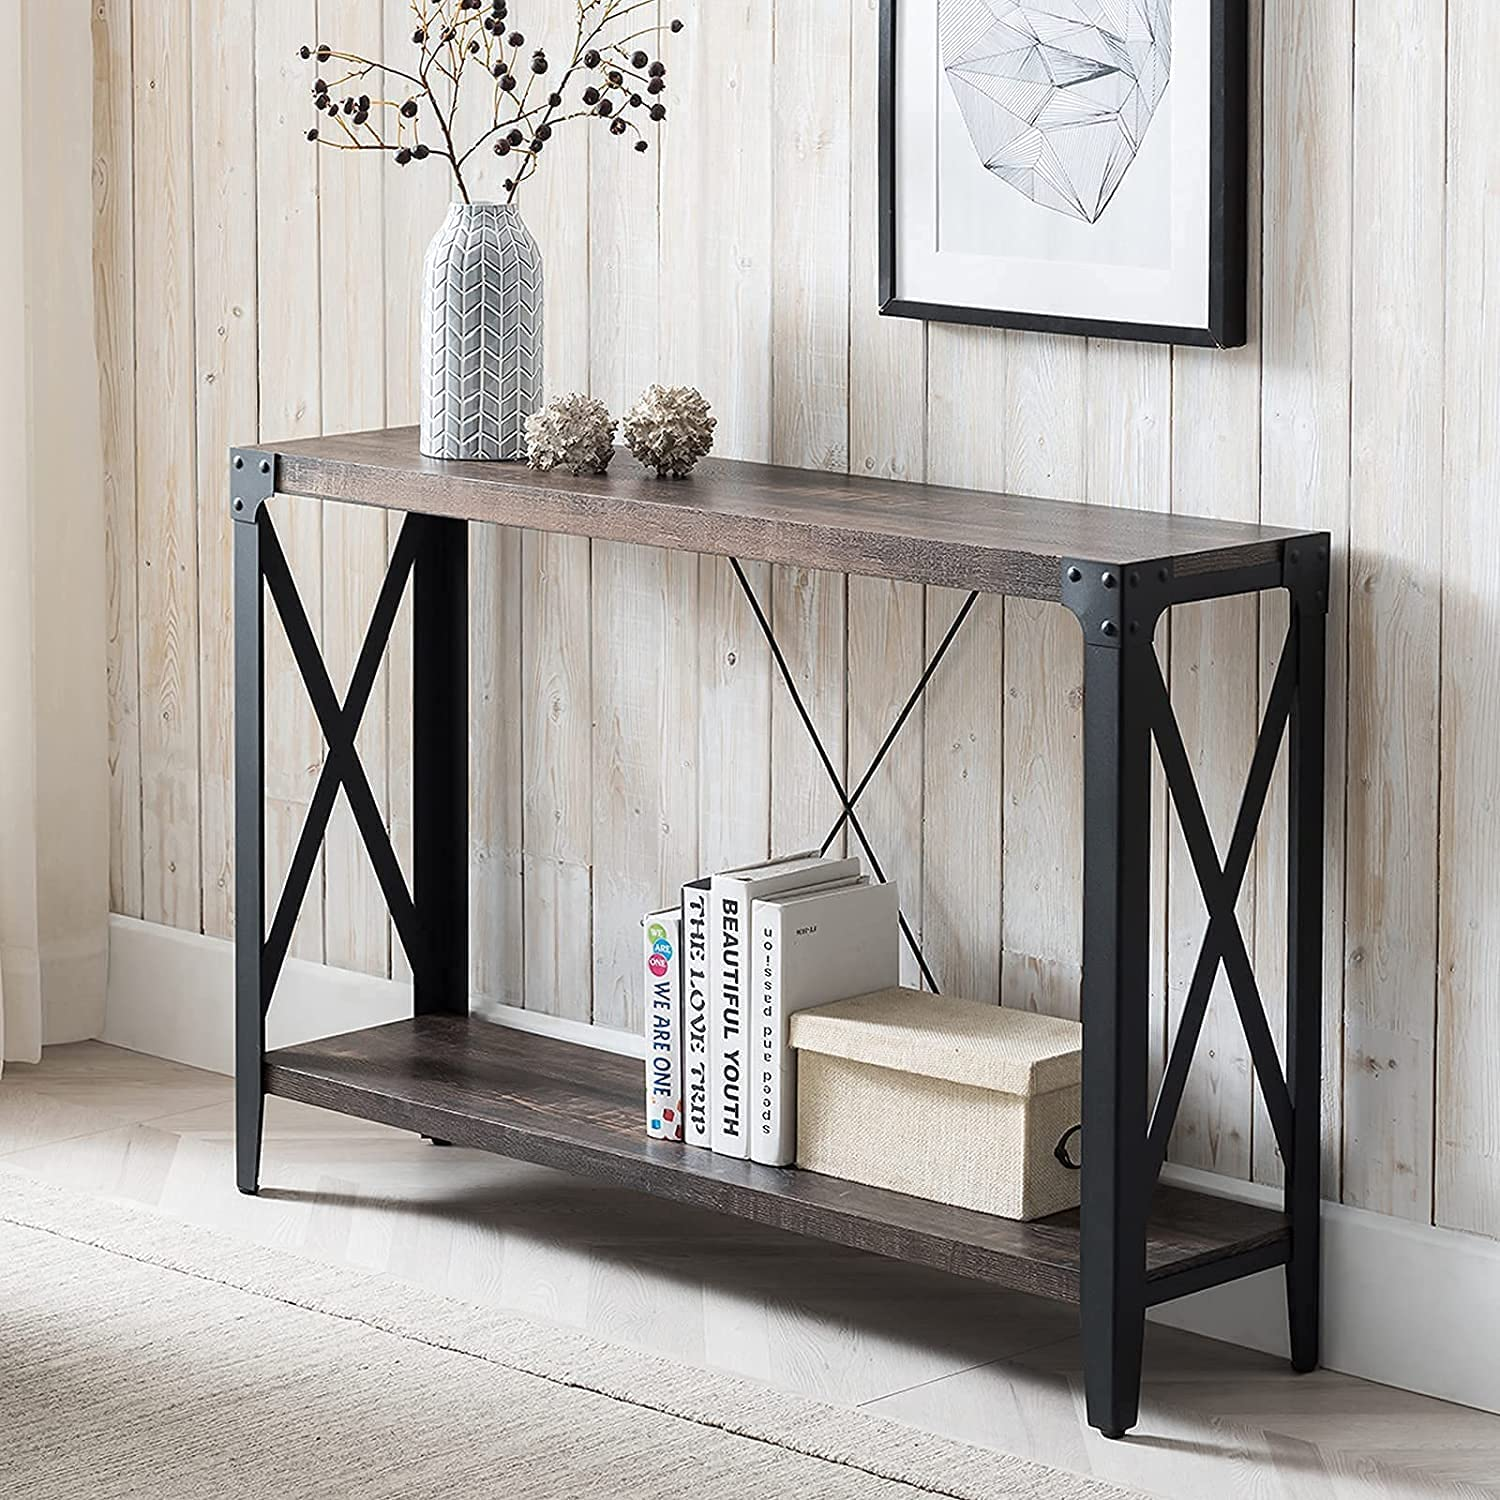 OKD Console Tables for Entryway, Hallway Table, 2-Tier Entrance Tables, Industrial Long Tables for Living Room, with Storage and X-Frame Open Shelf, Easy Assemble, Dark Rustic Oak